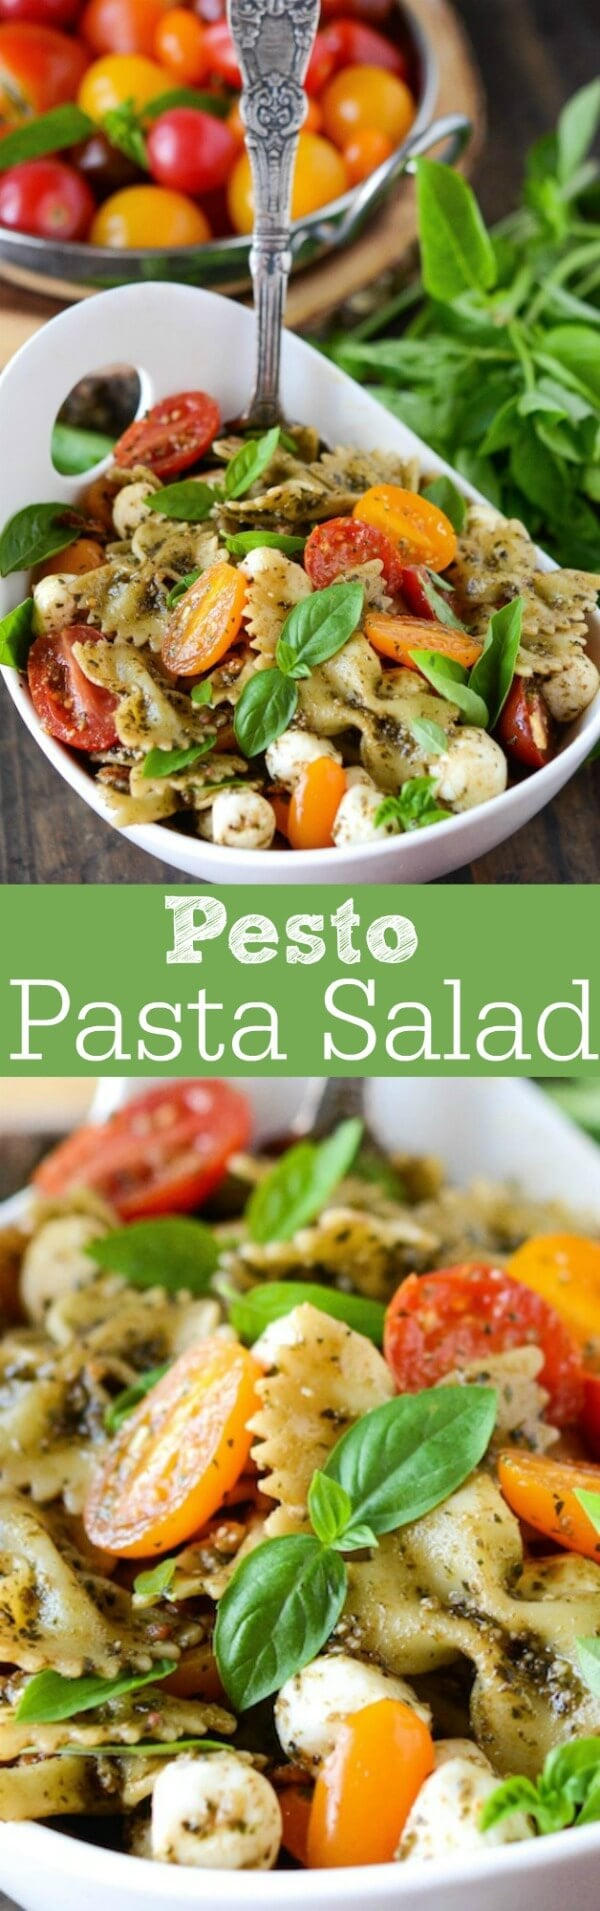 Pesto Bacon Pasta Salad! Bowtie pasta in a basil pesto sauce, tossed with bacon, fresh mozzarella and cherry tomatoes!